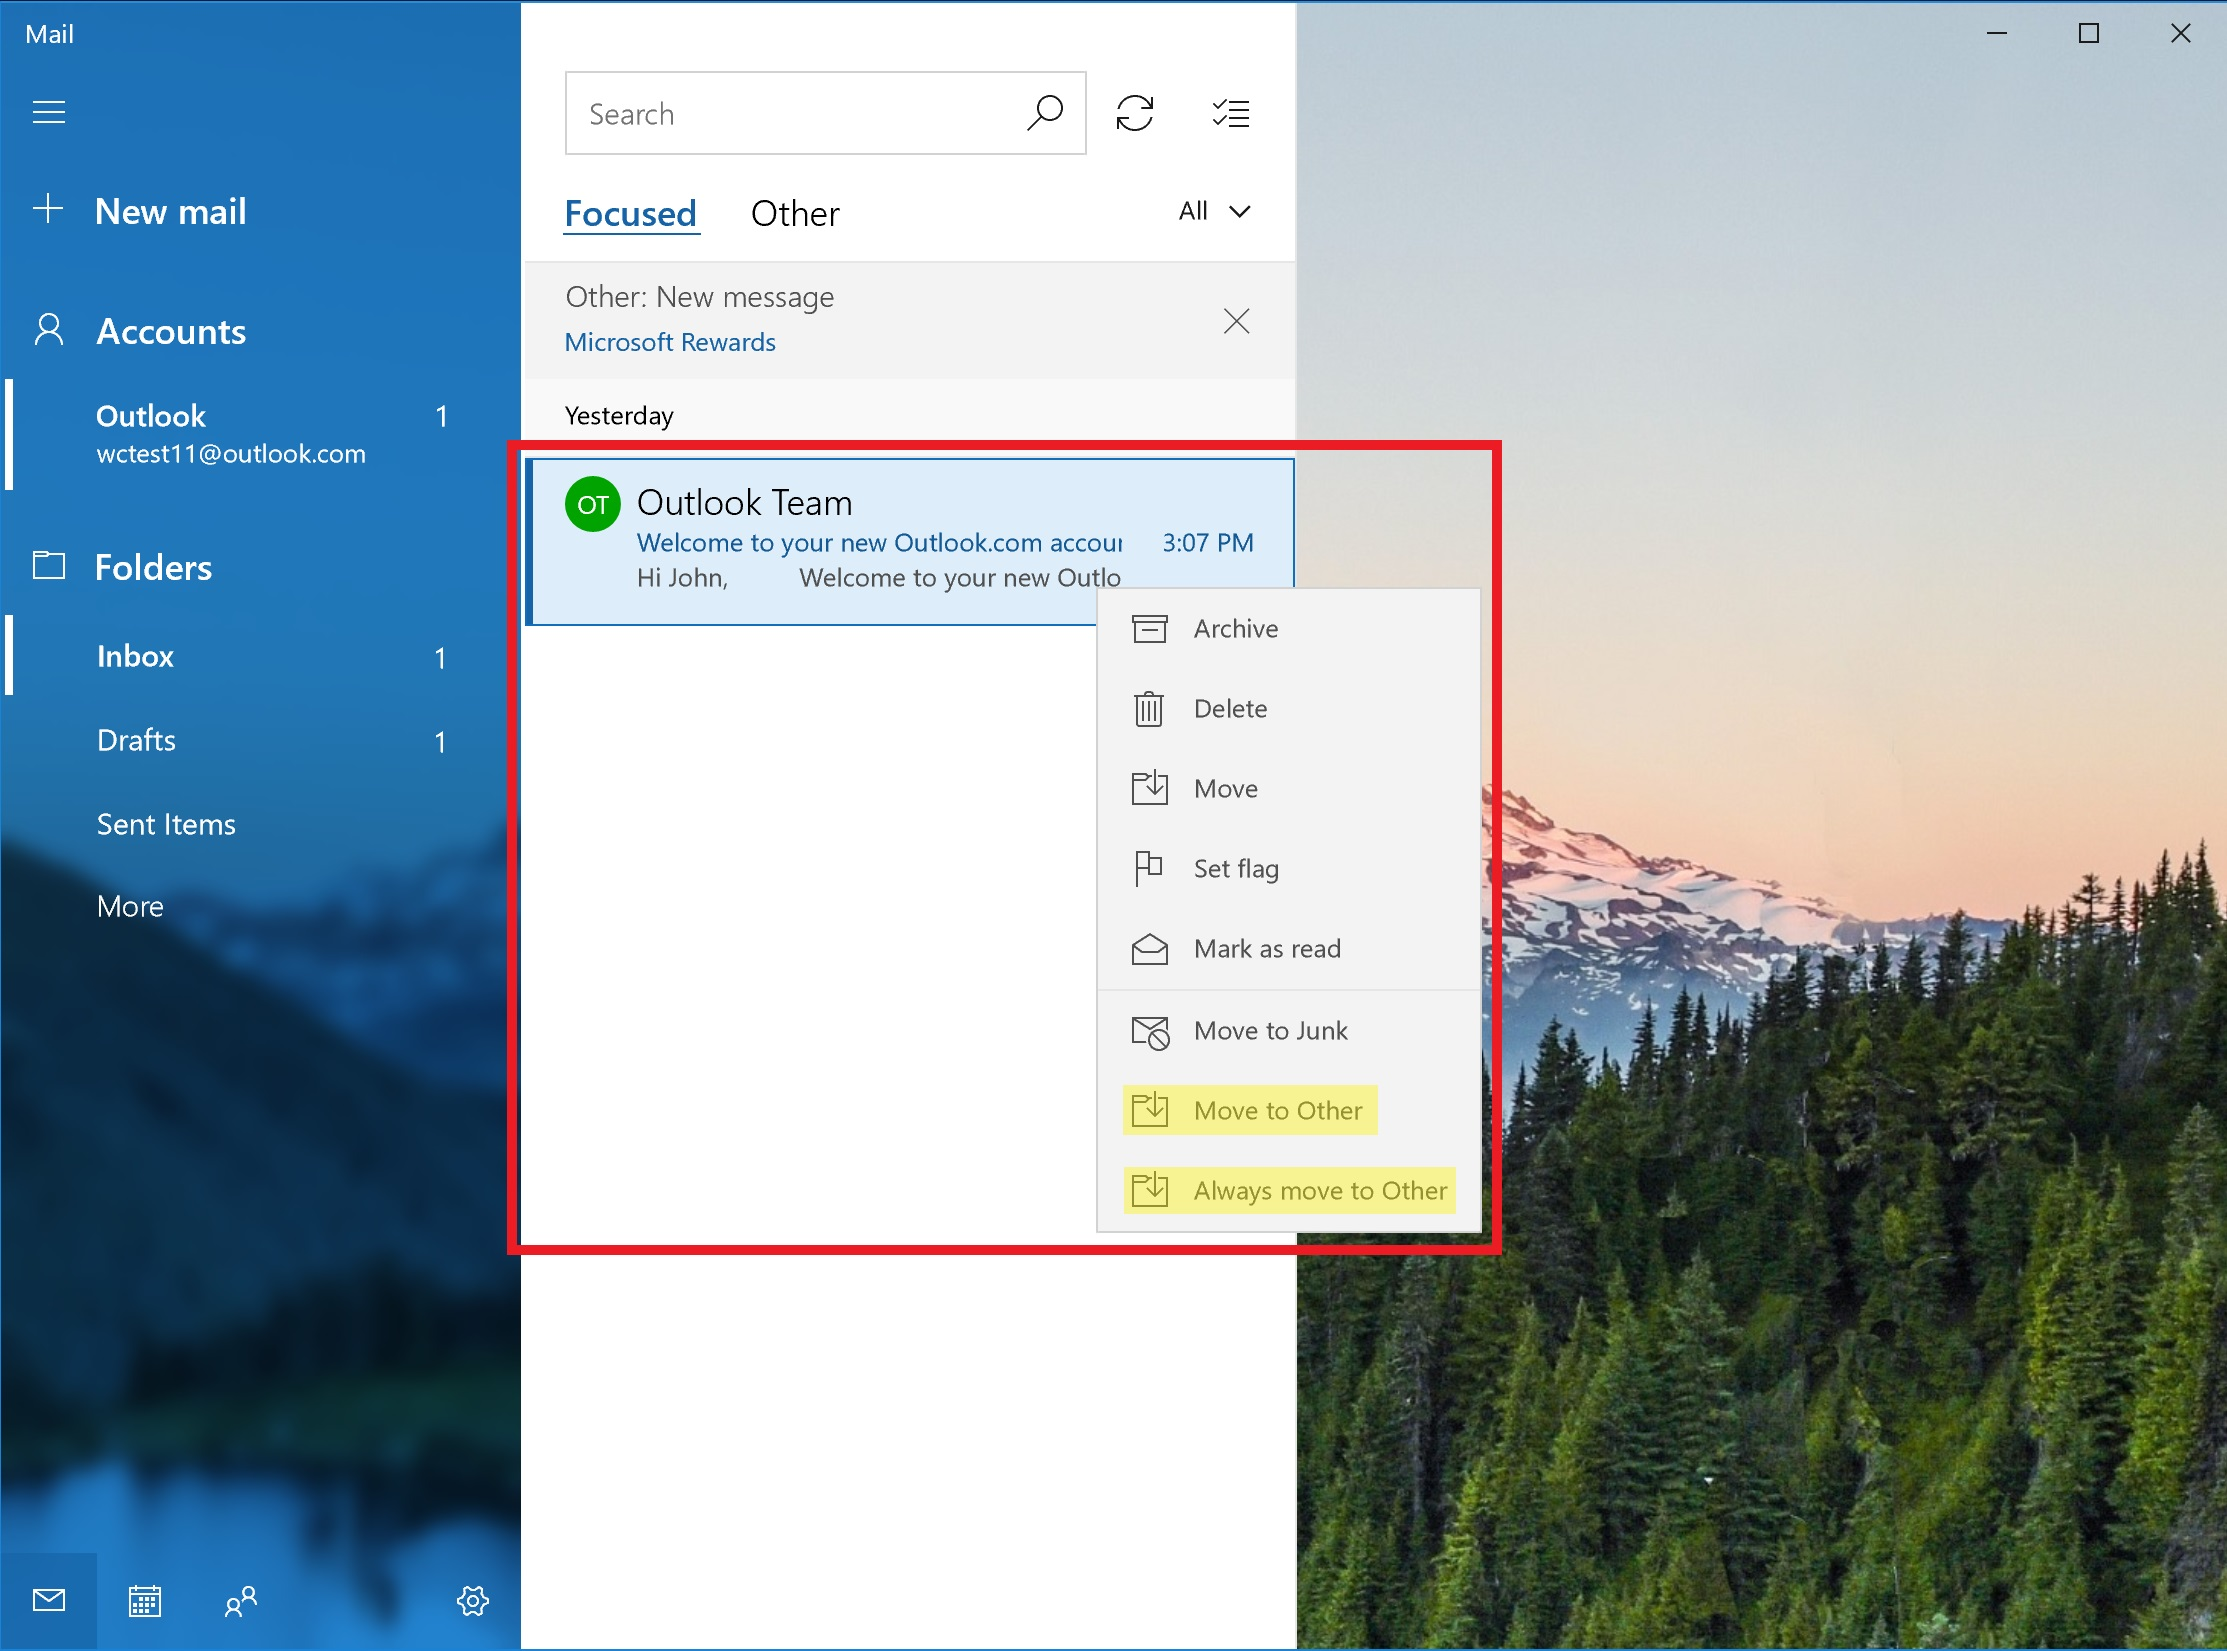 Mail app email management options